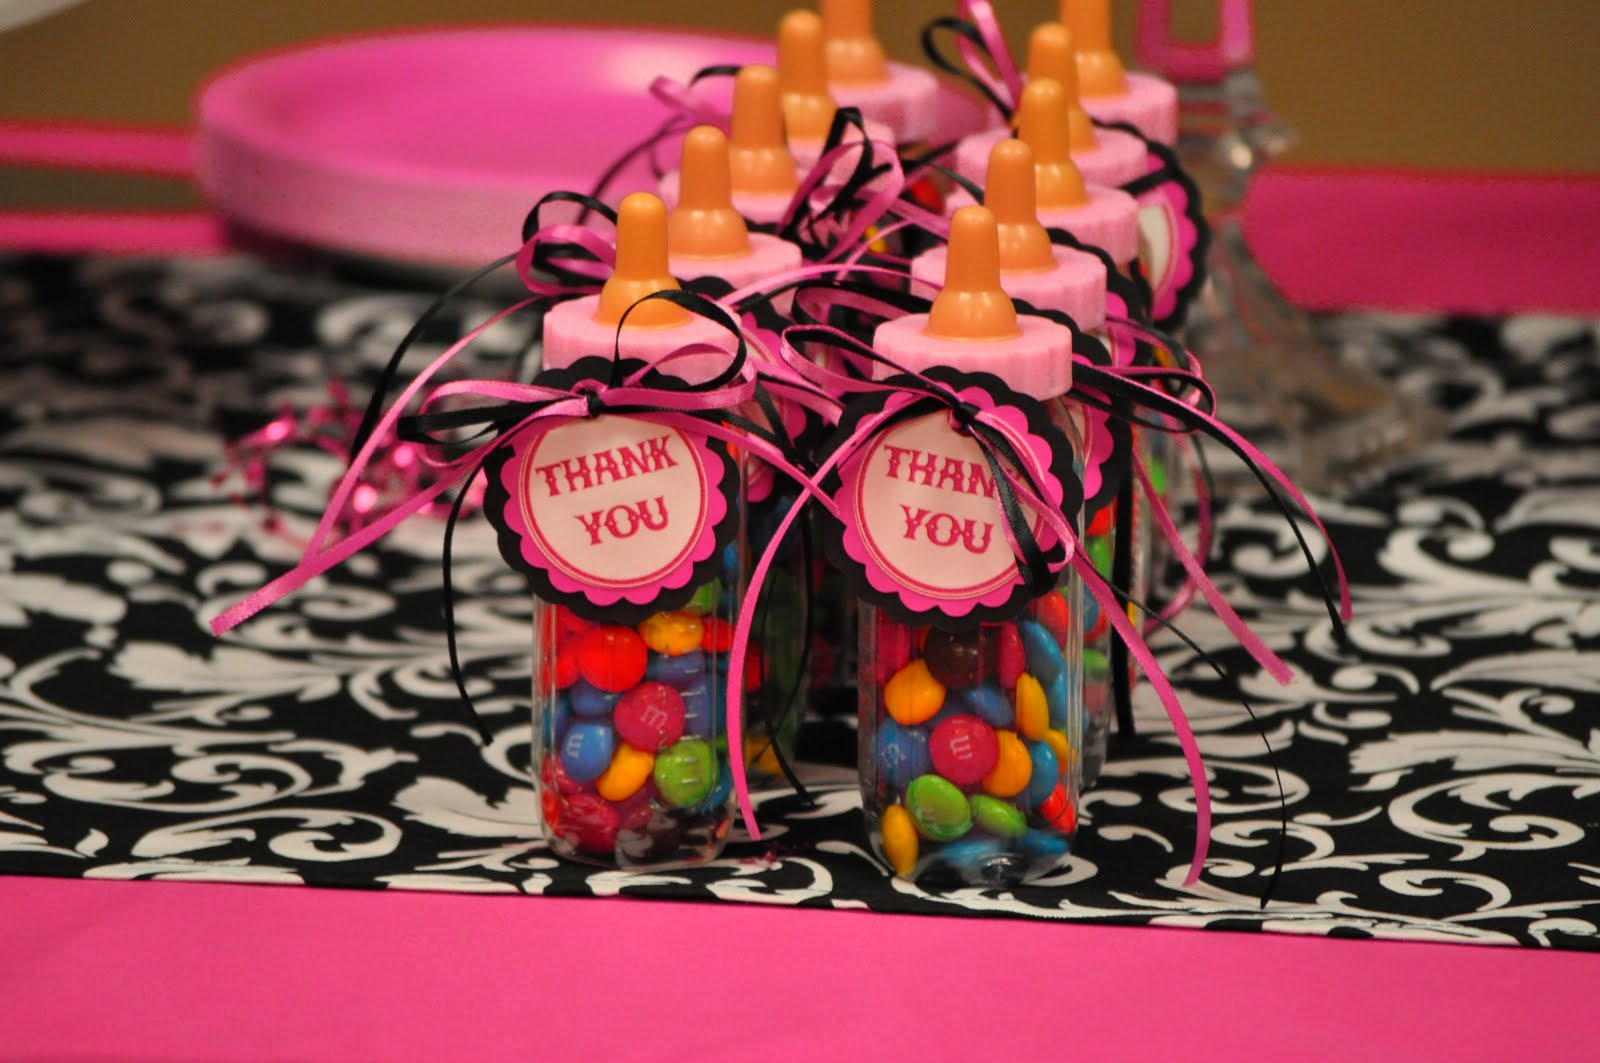 Pink animal print baby shower - photo#15